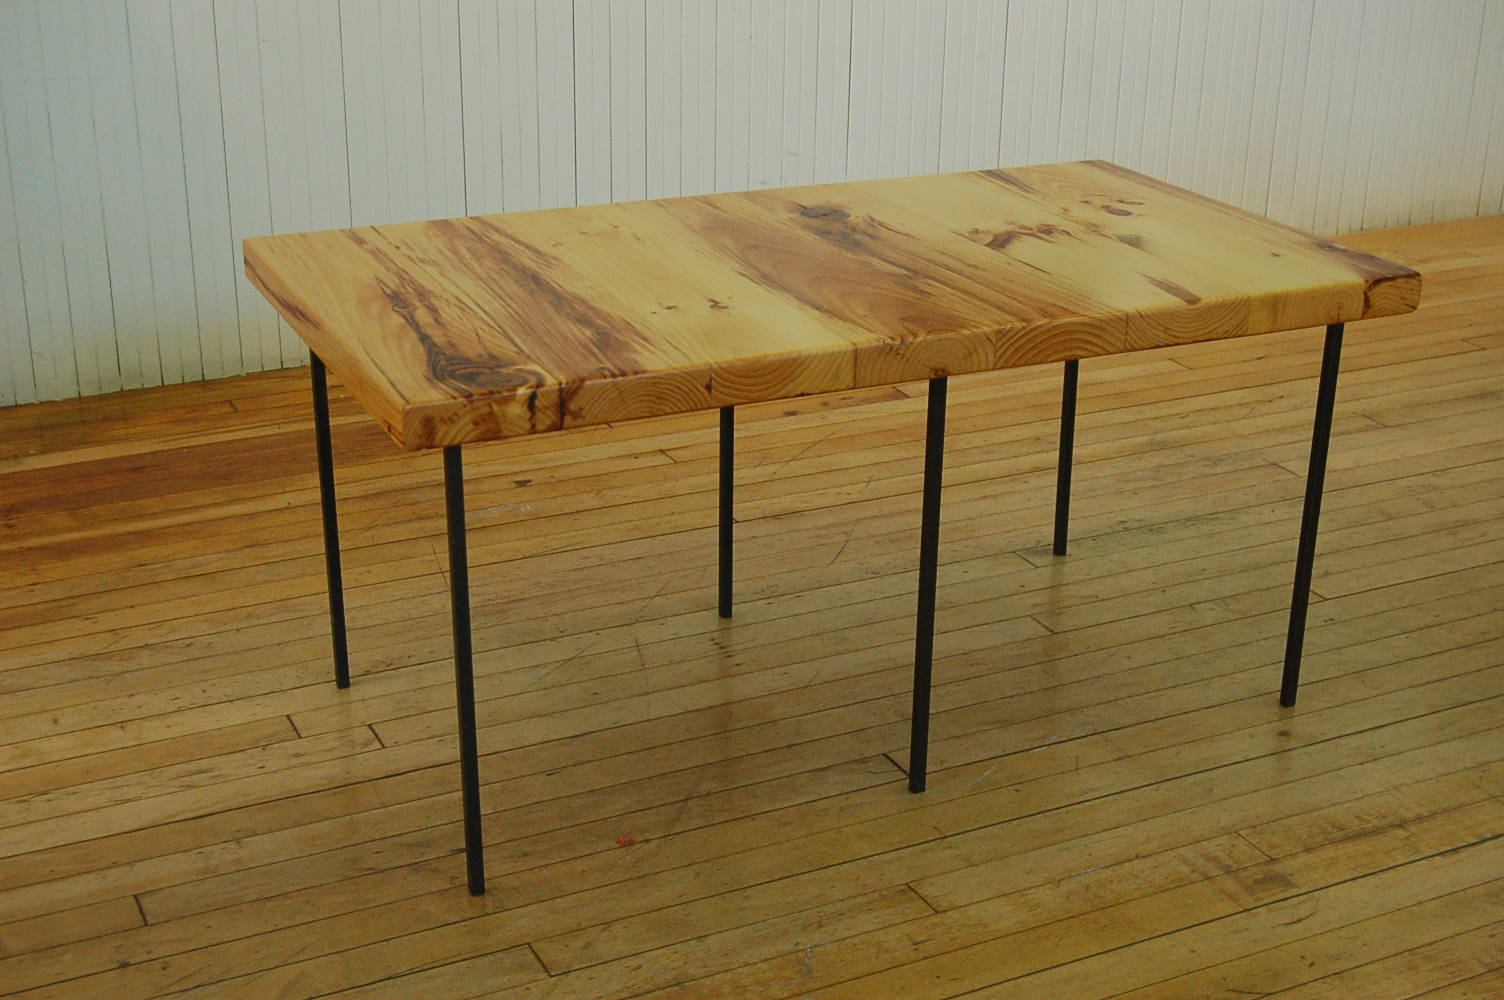 Old wooden table top - So Excited To Have Our Table Finished Up By Friend And Sculptor Adam Pearson He Created This Table Top From Old Pine Which He Put Together To Make A New